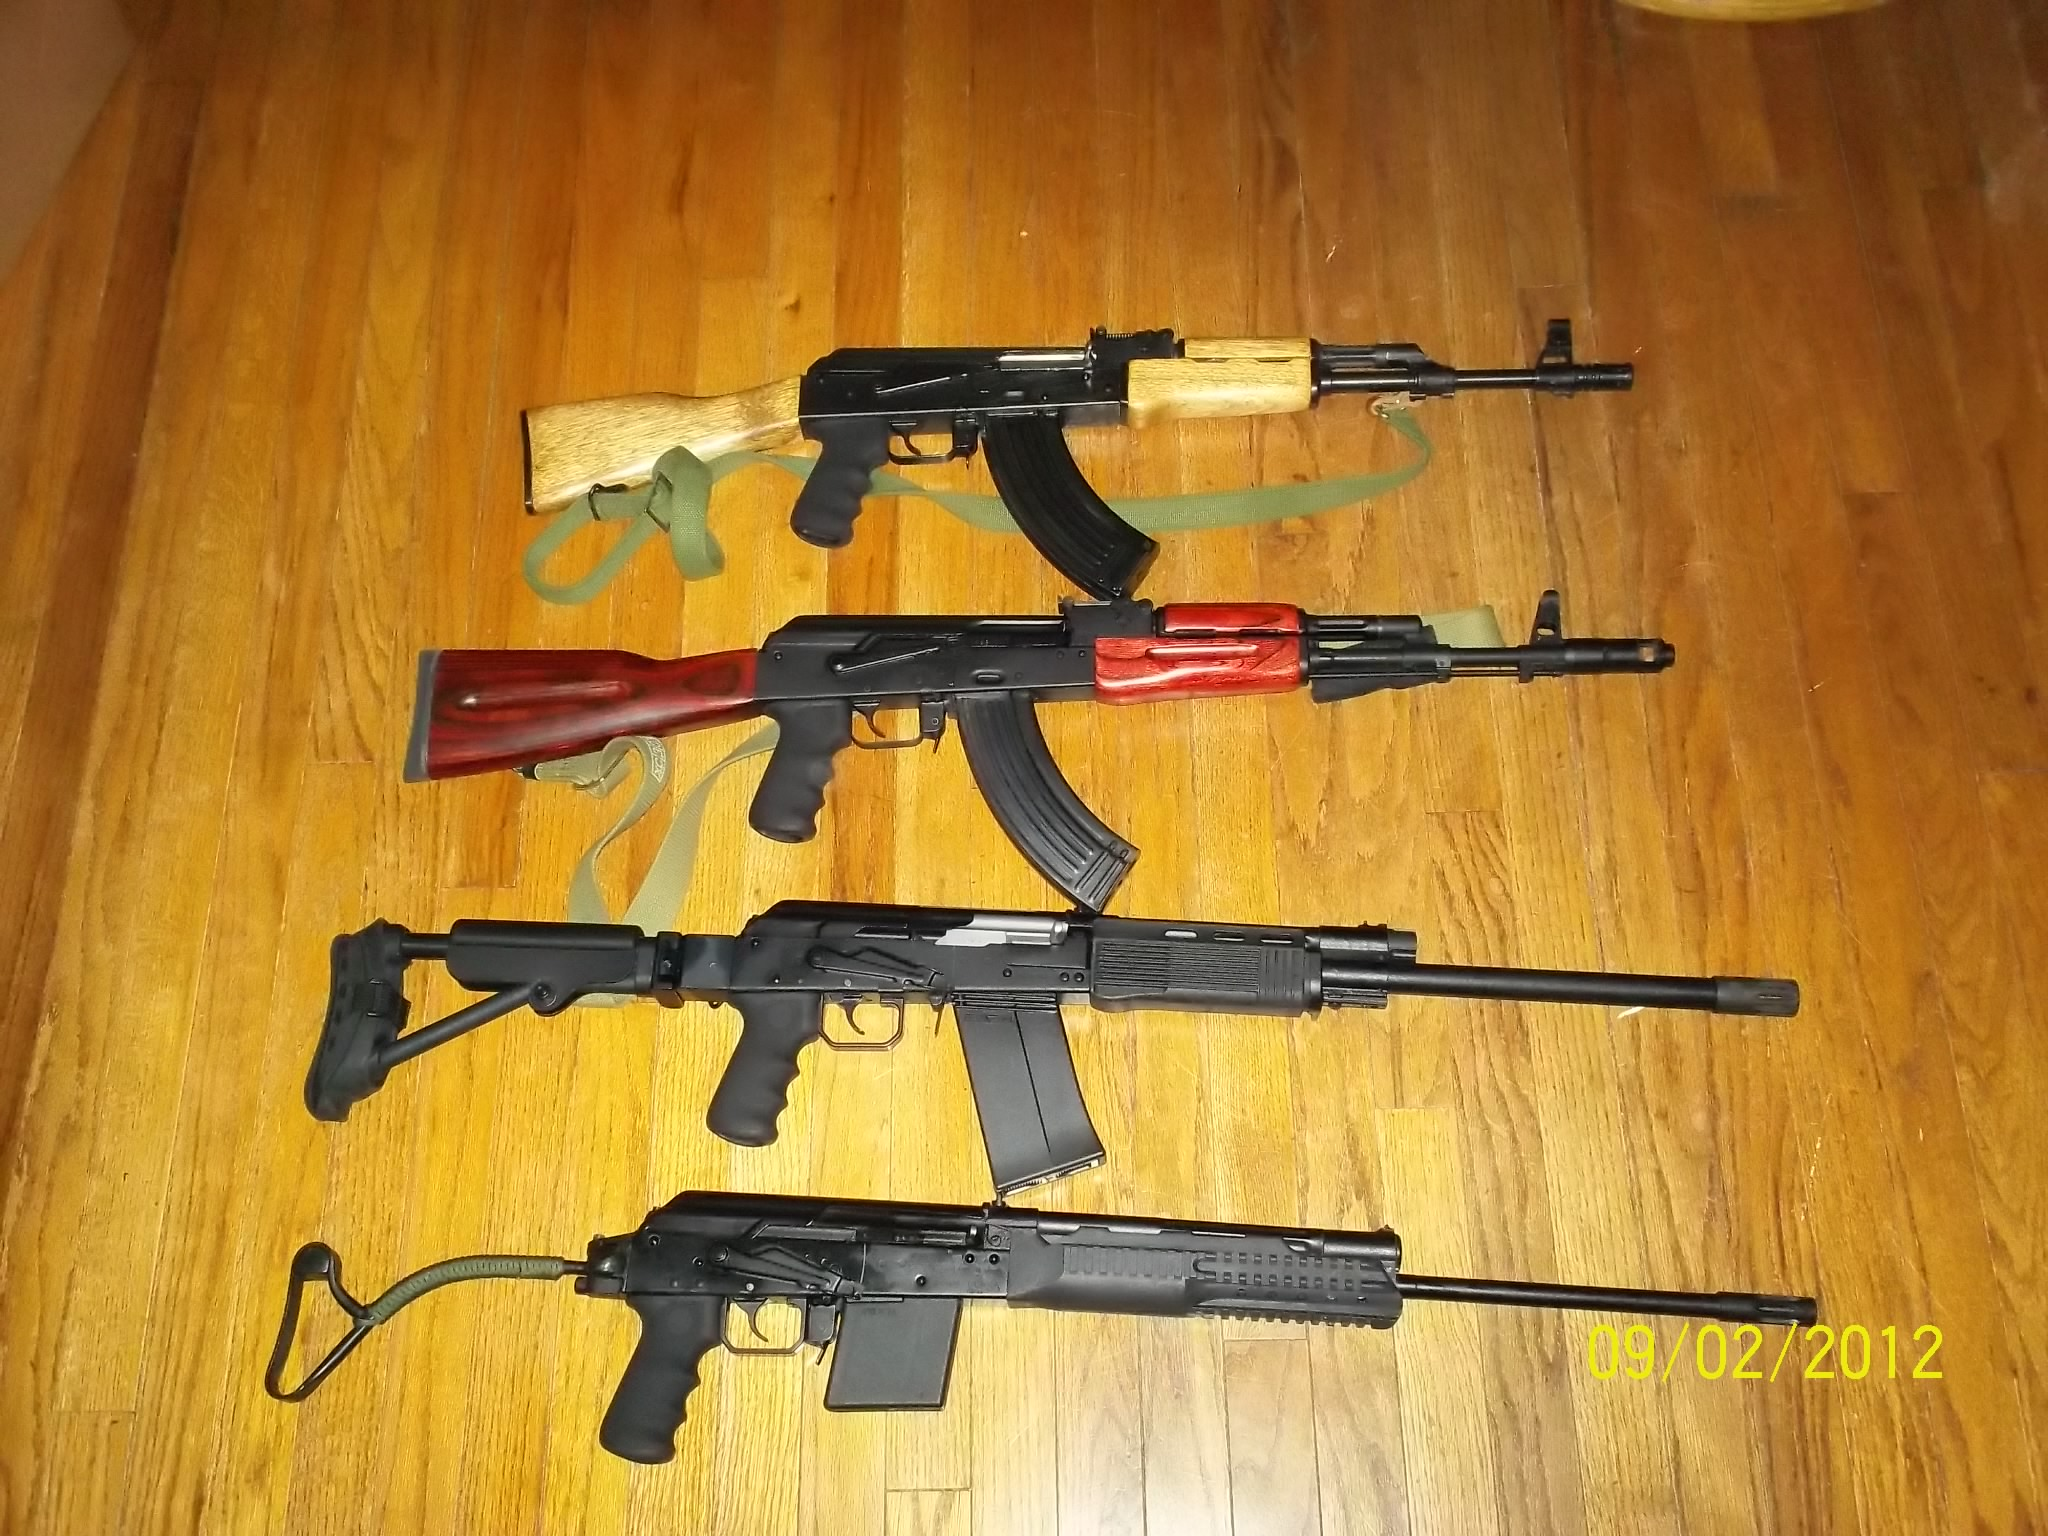 Click image for larger version.  Name:My AK family 9-2-12.JPG Views:1644 Size:713.2 KB ID:529